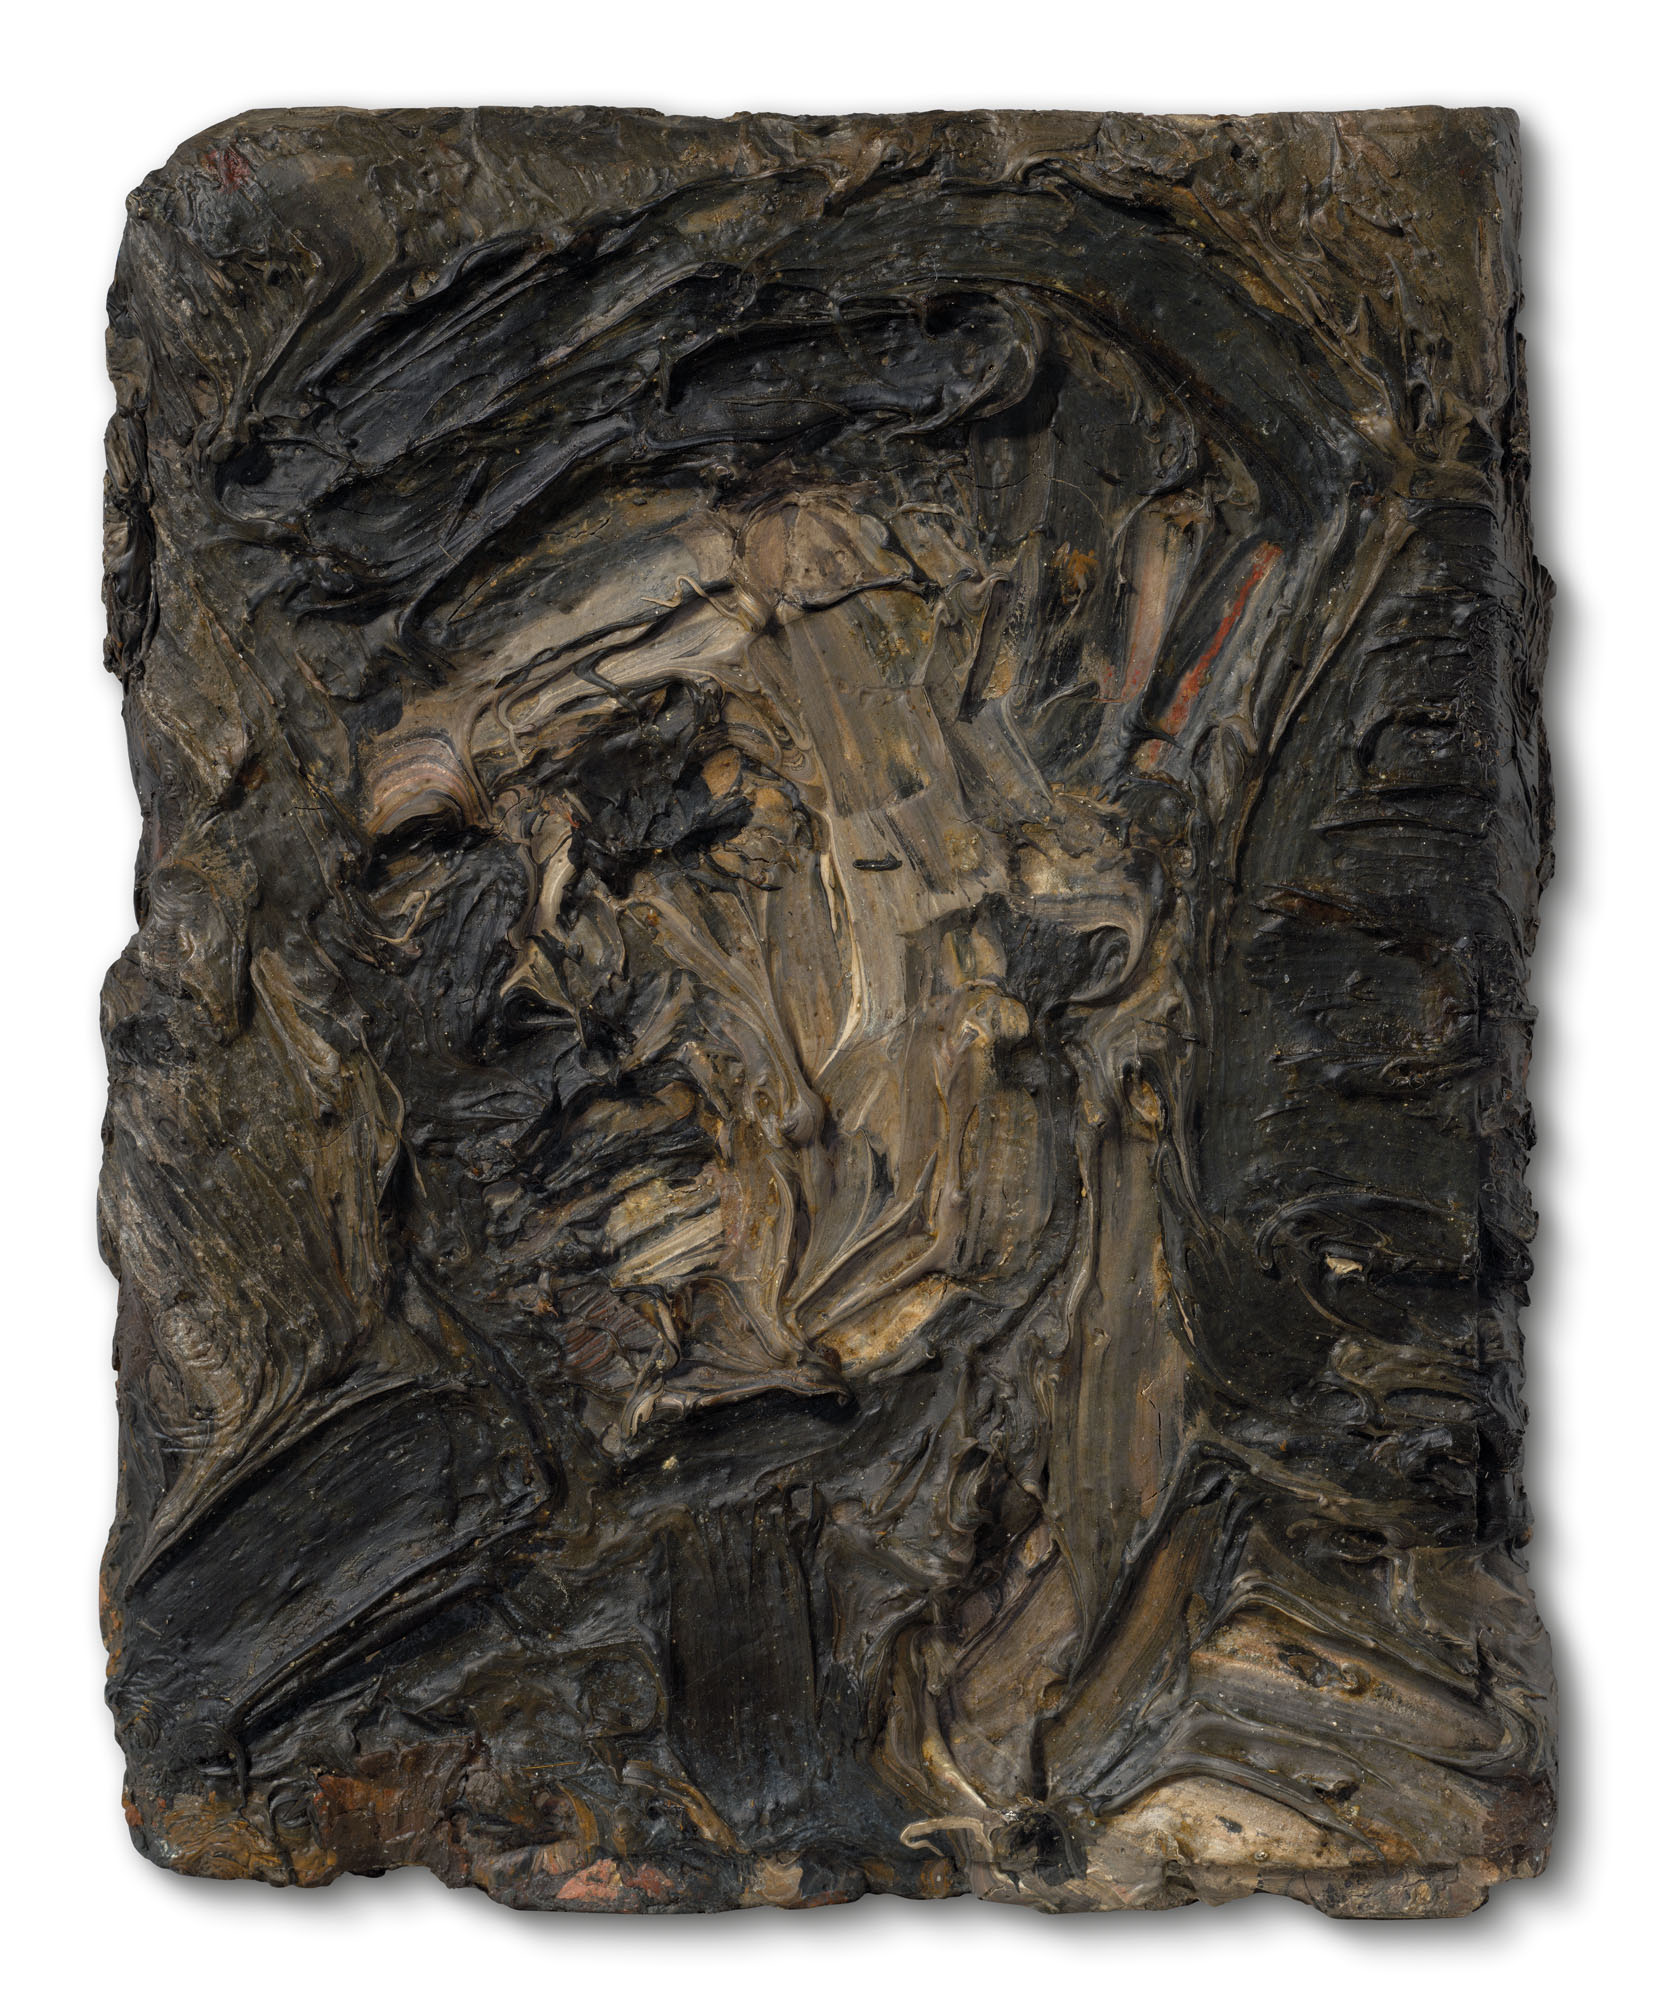 Leon Kossoff (1926-2019), Head of Frank Auerbach, 1956. Oil on board. 7½ x 6 in (19 x 15.3 cm). Estimate £100,000-150,000. Offered in the Modern British Art Evening Sale on 1 March 2021 at Christie's in London